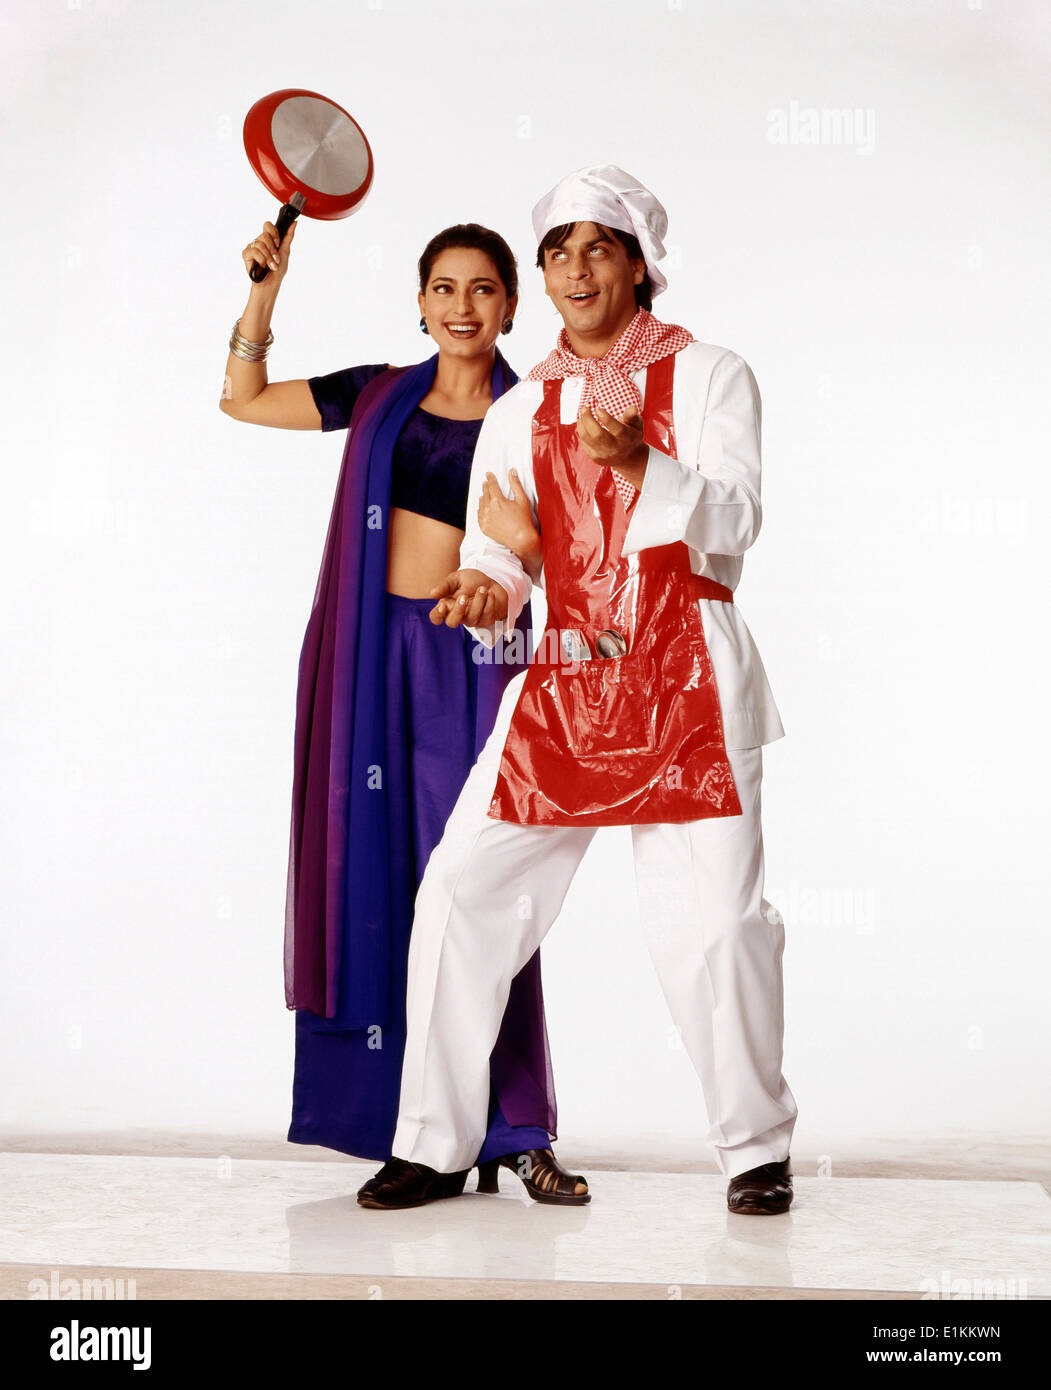 Indian Bollywood Film Actor Shahrukh Khan And Actress Juhi Chawla In